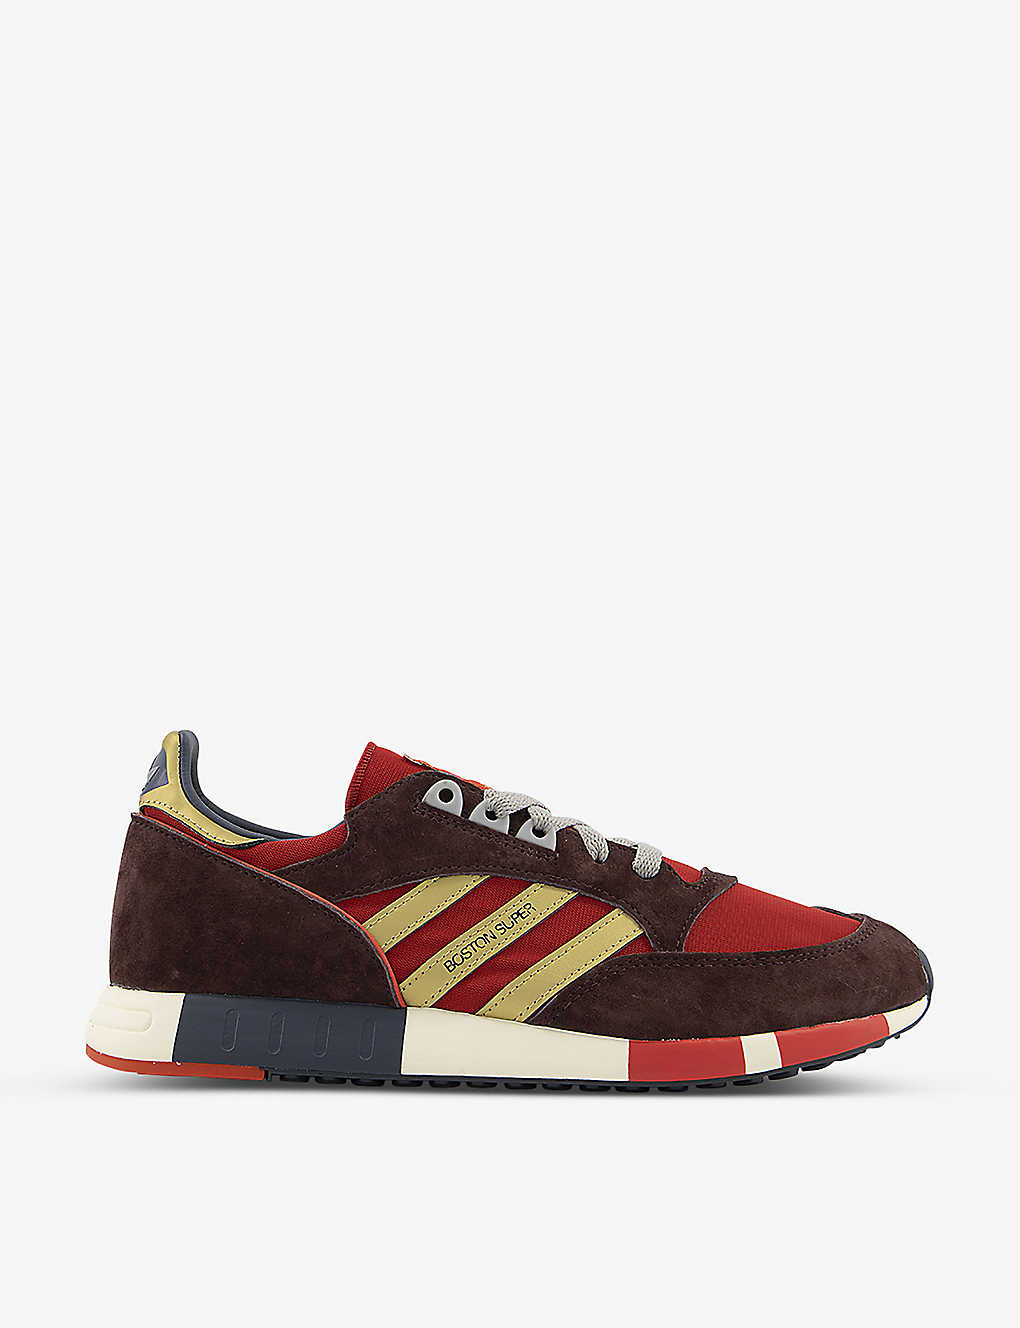 ADIDAS: Boston Super nylon and suede trainers